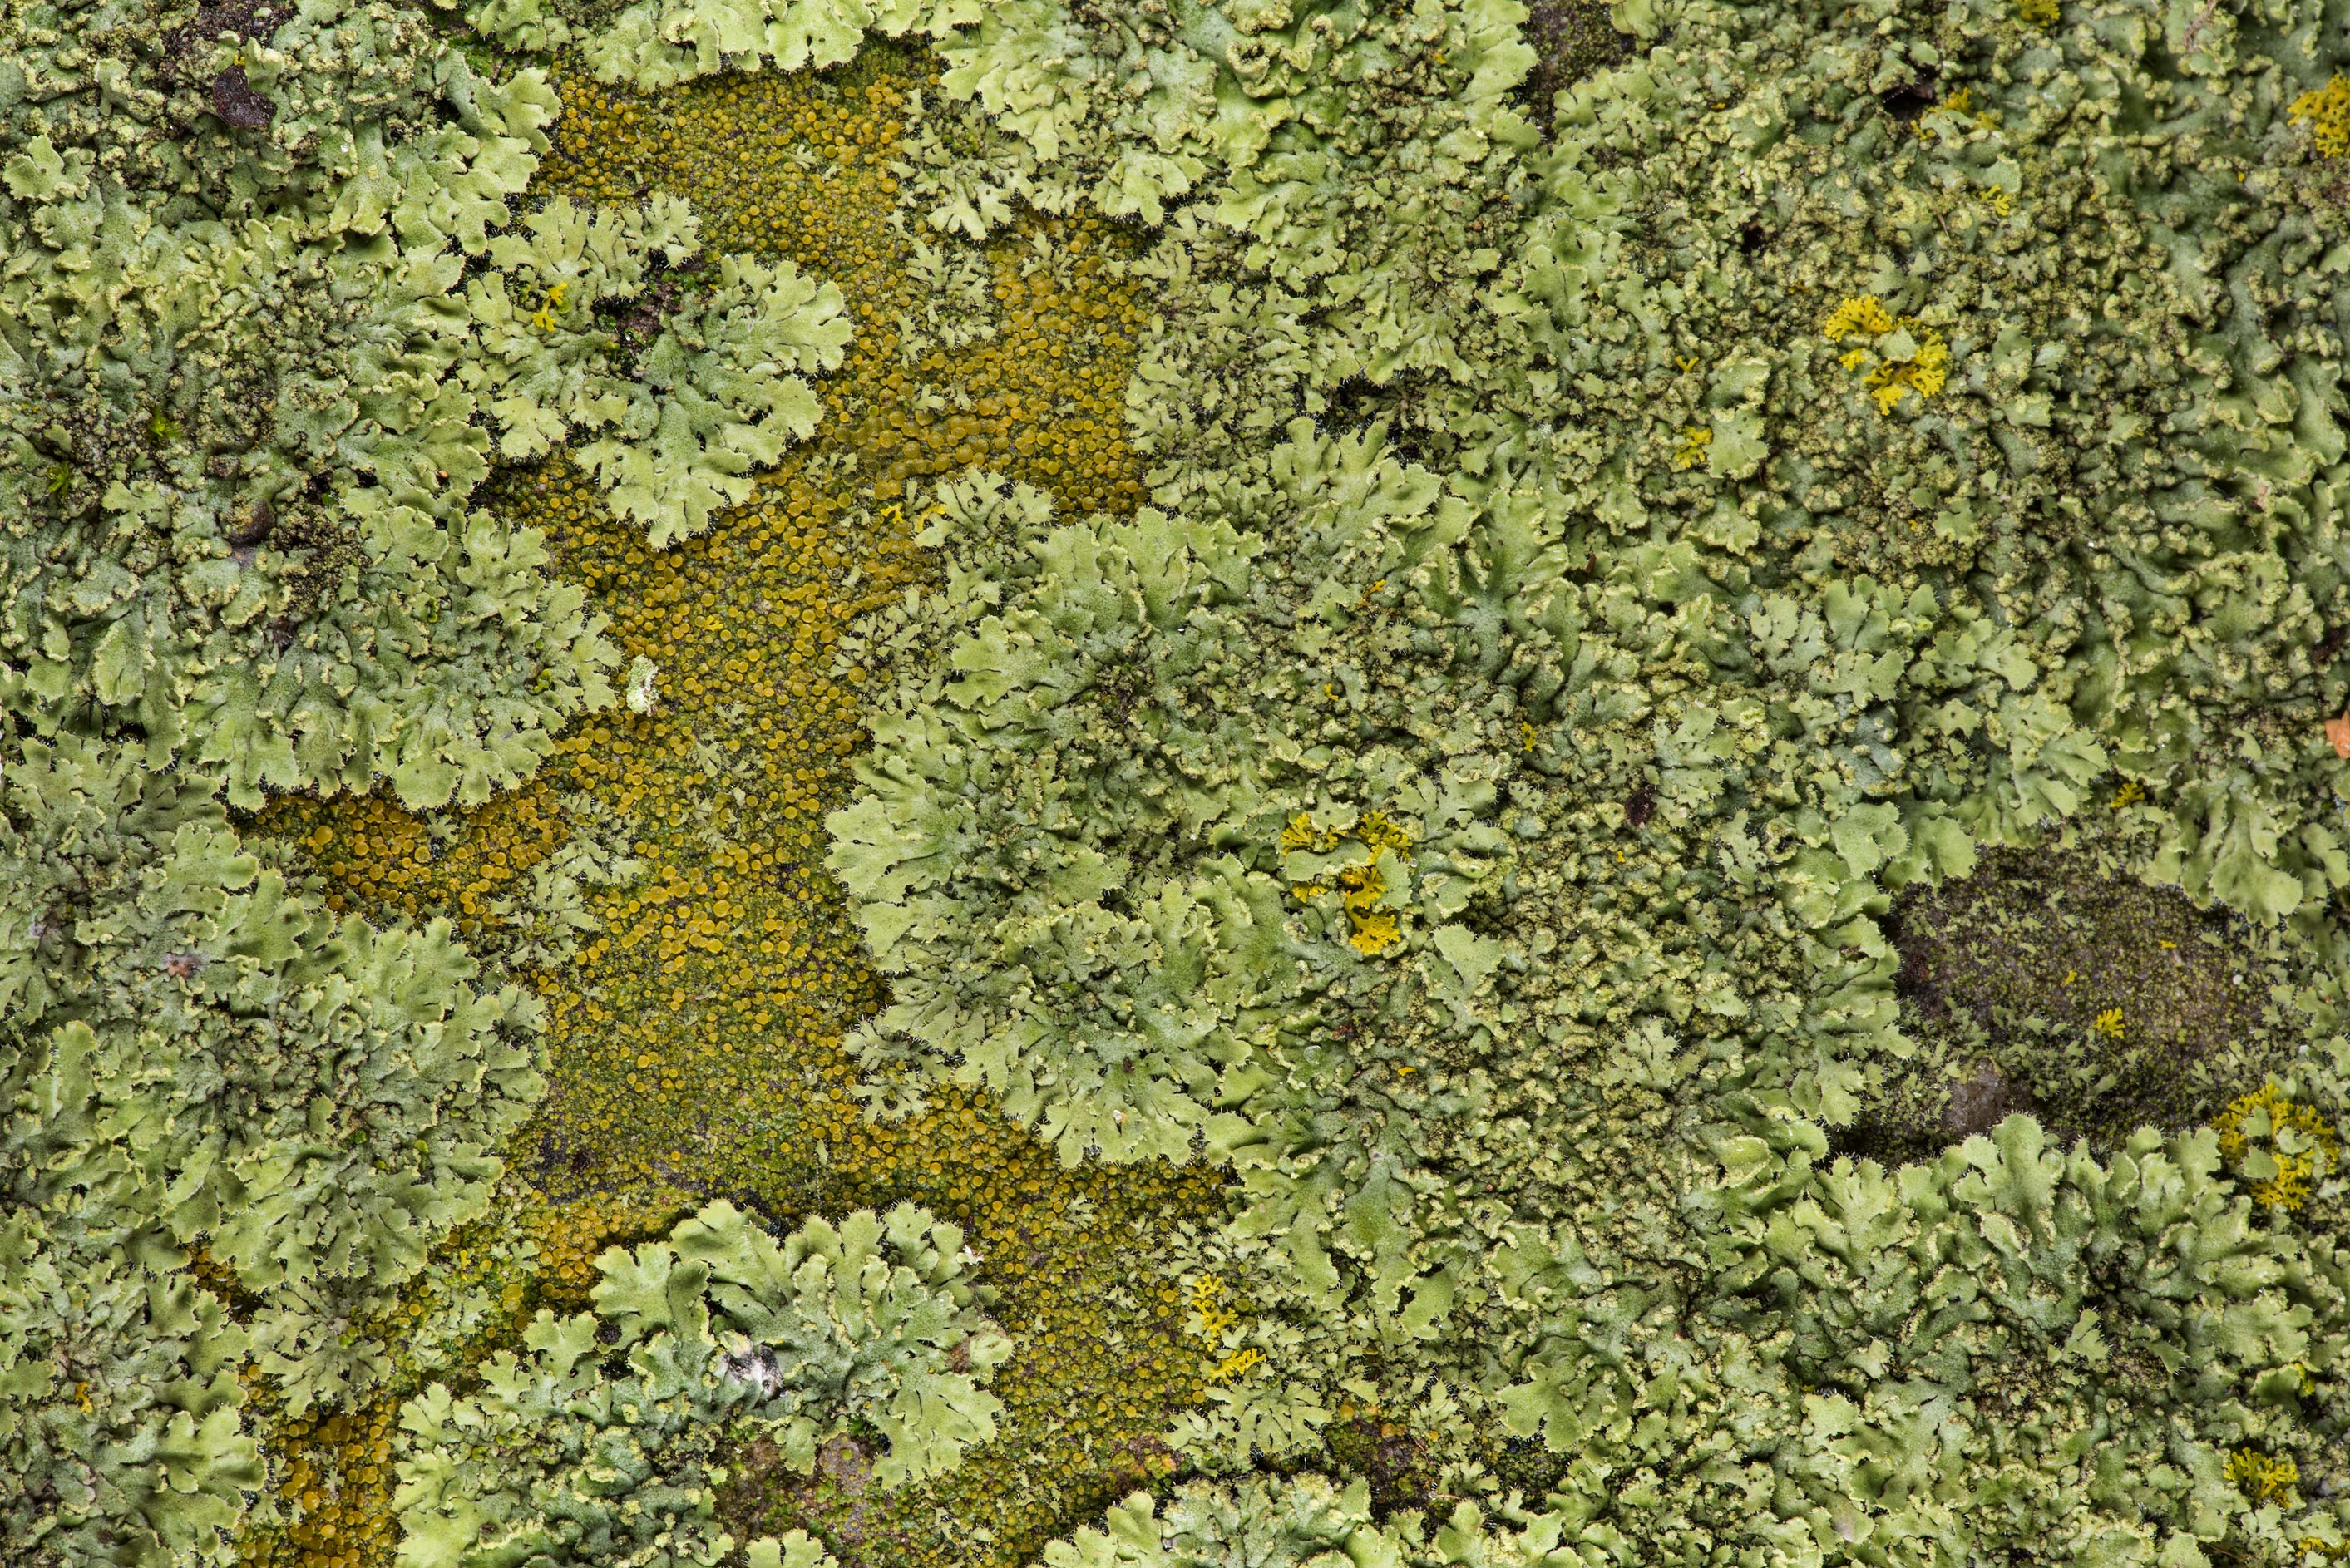 Texture of powdered shadow lichen (Phaeophyscia...in Boonville Cemetery. Bryan, Texas